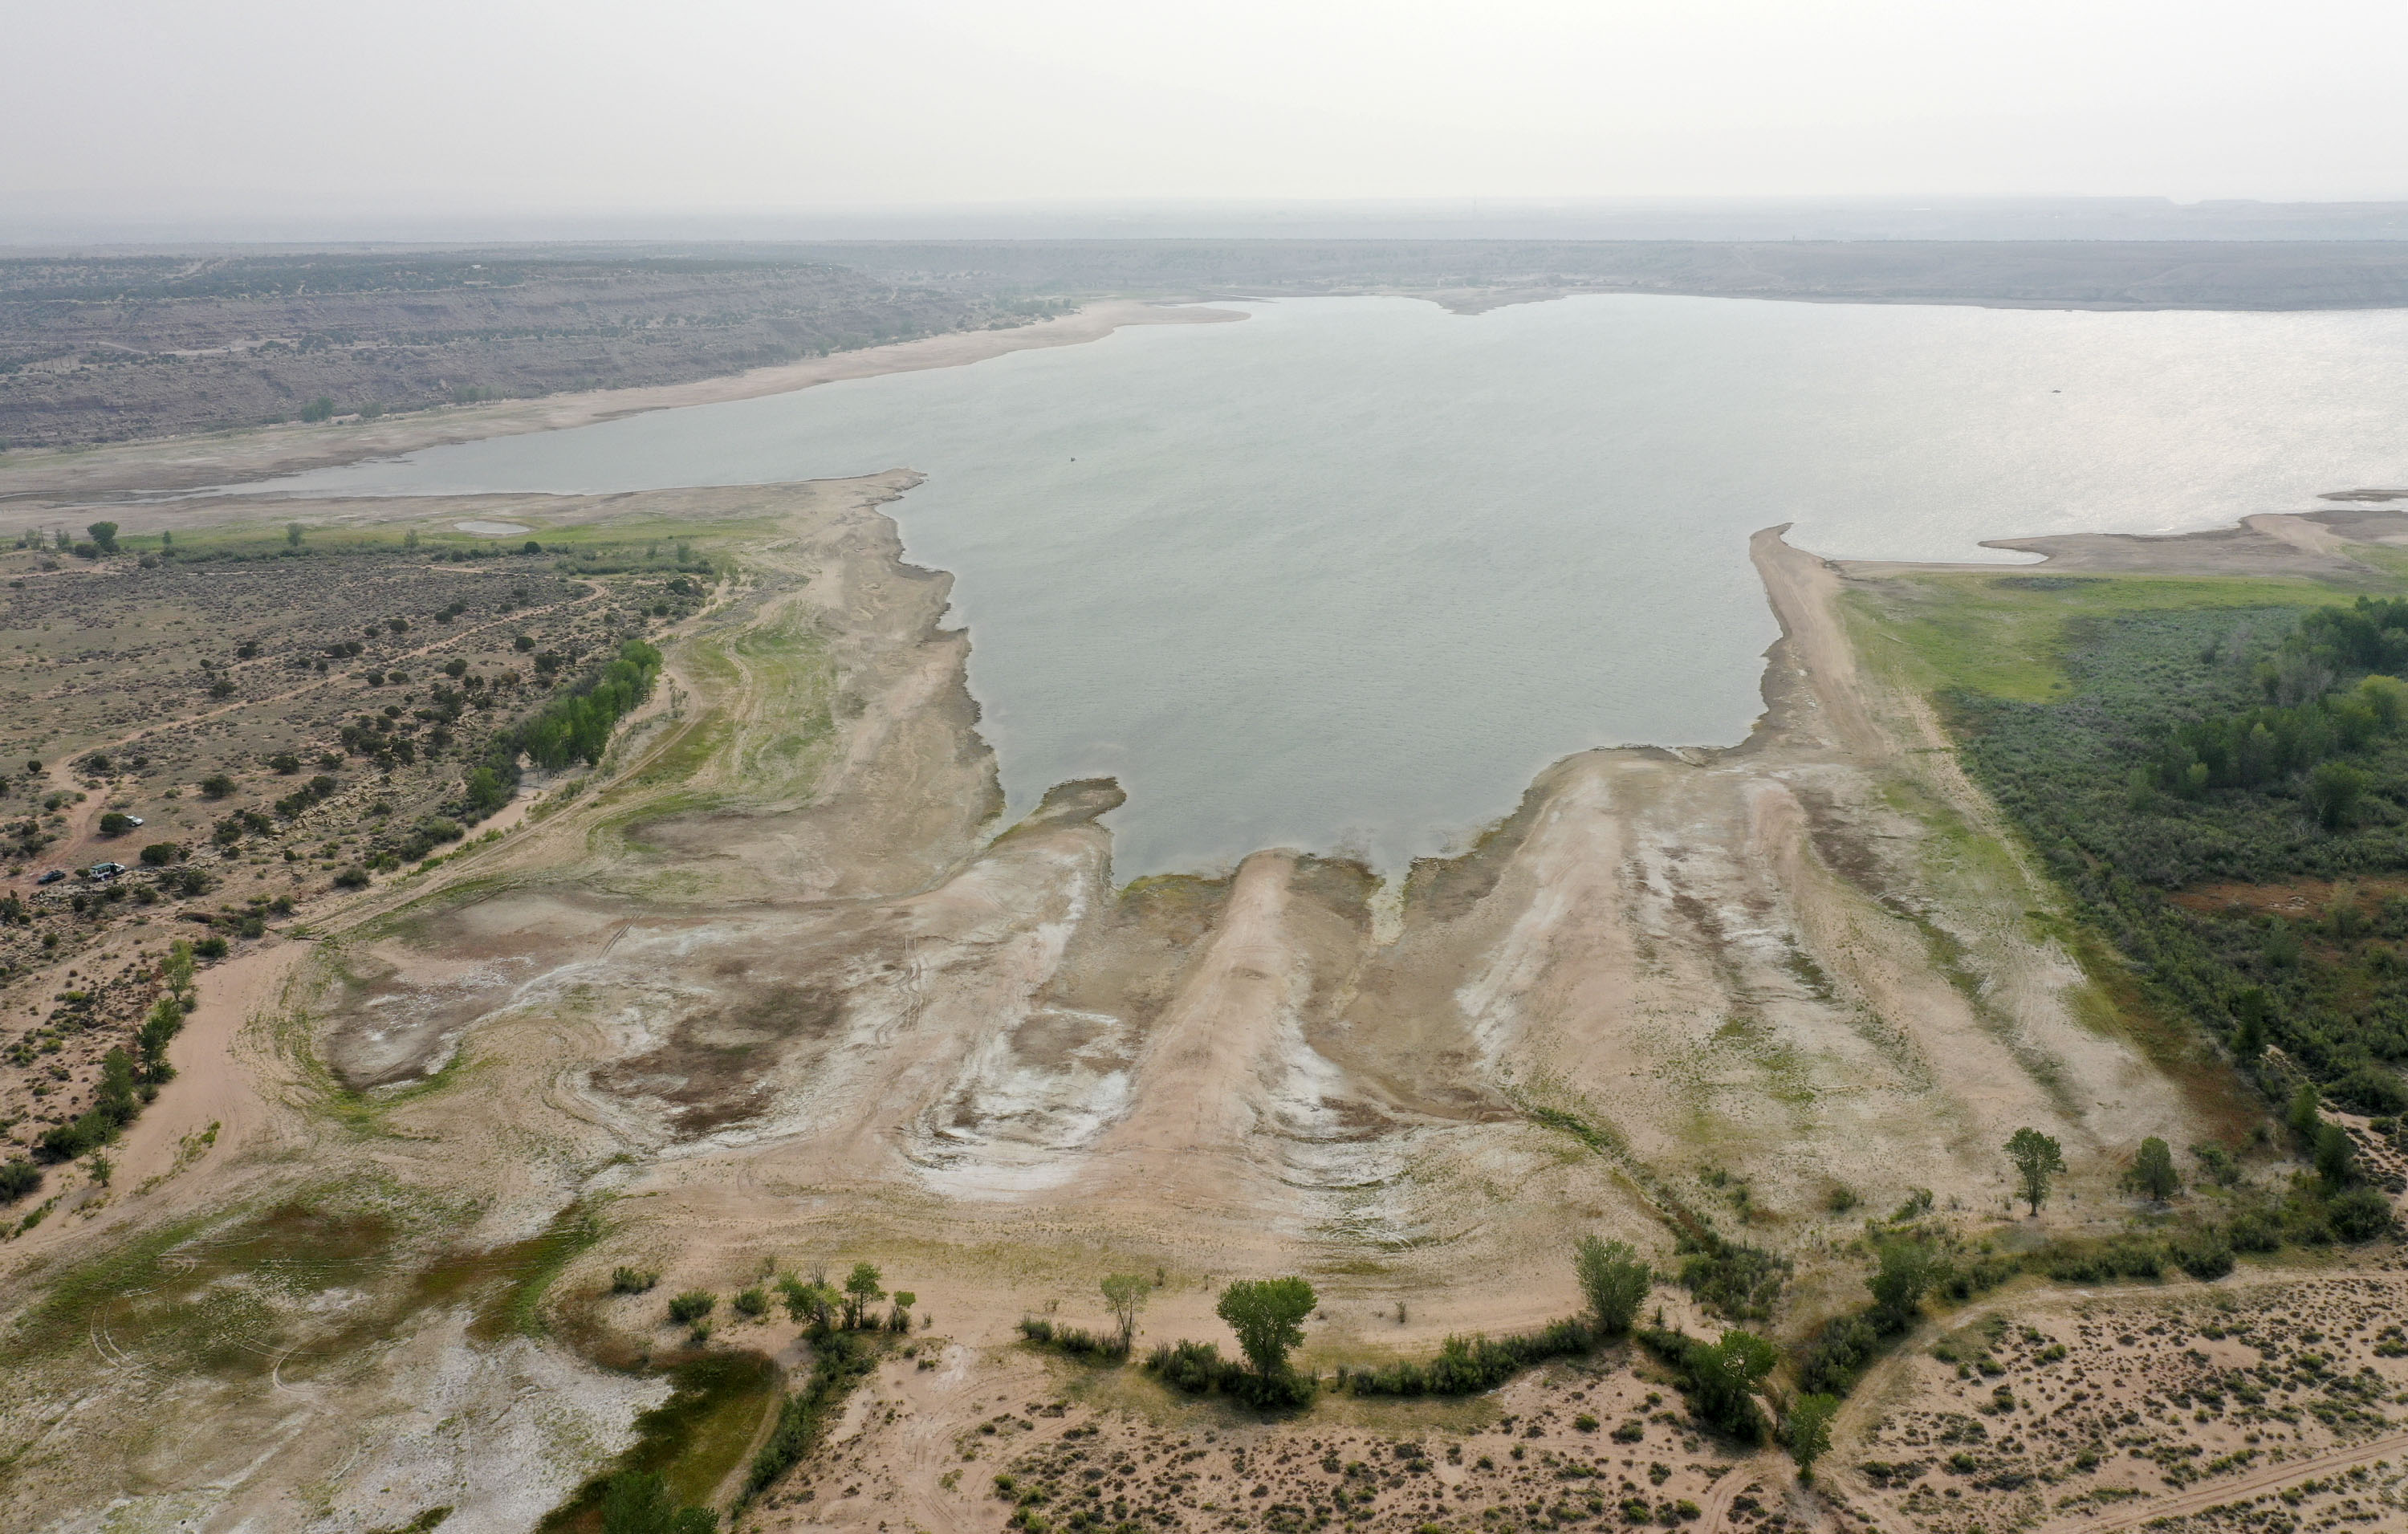 Low water levels are pictured at Starvation Reservoir in Duchesne County on Monday, Aug. 9, 2021.